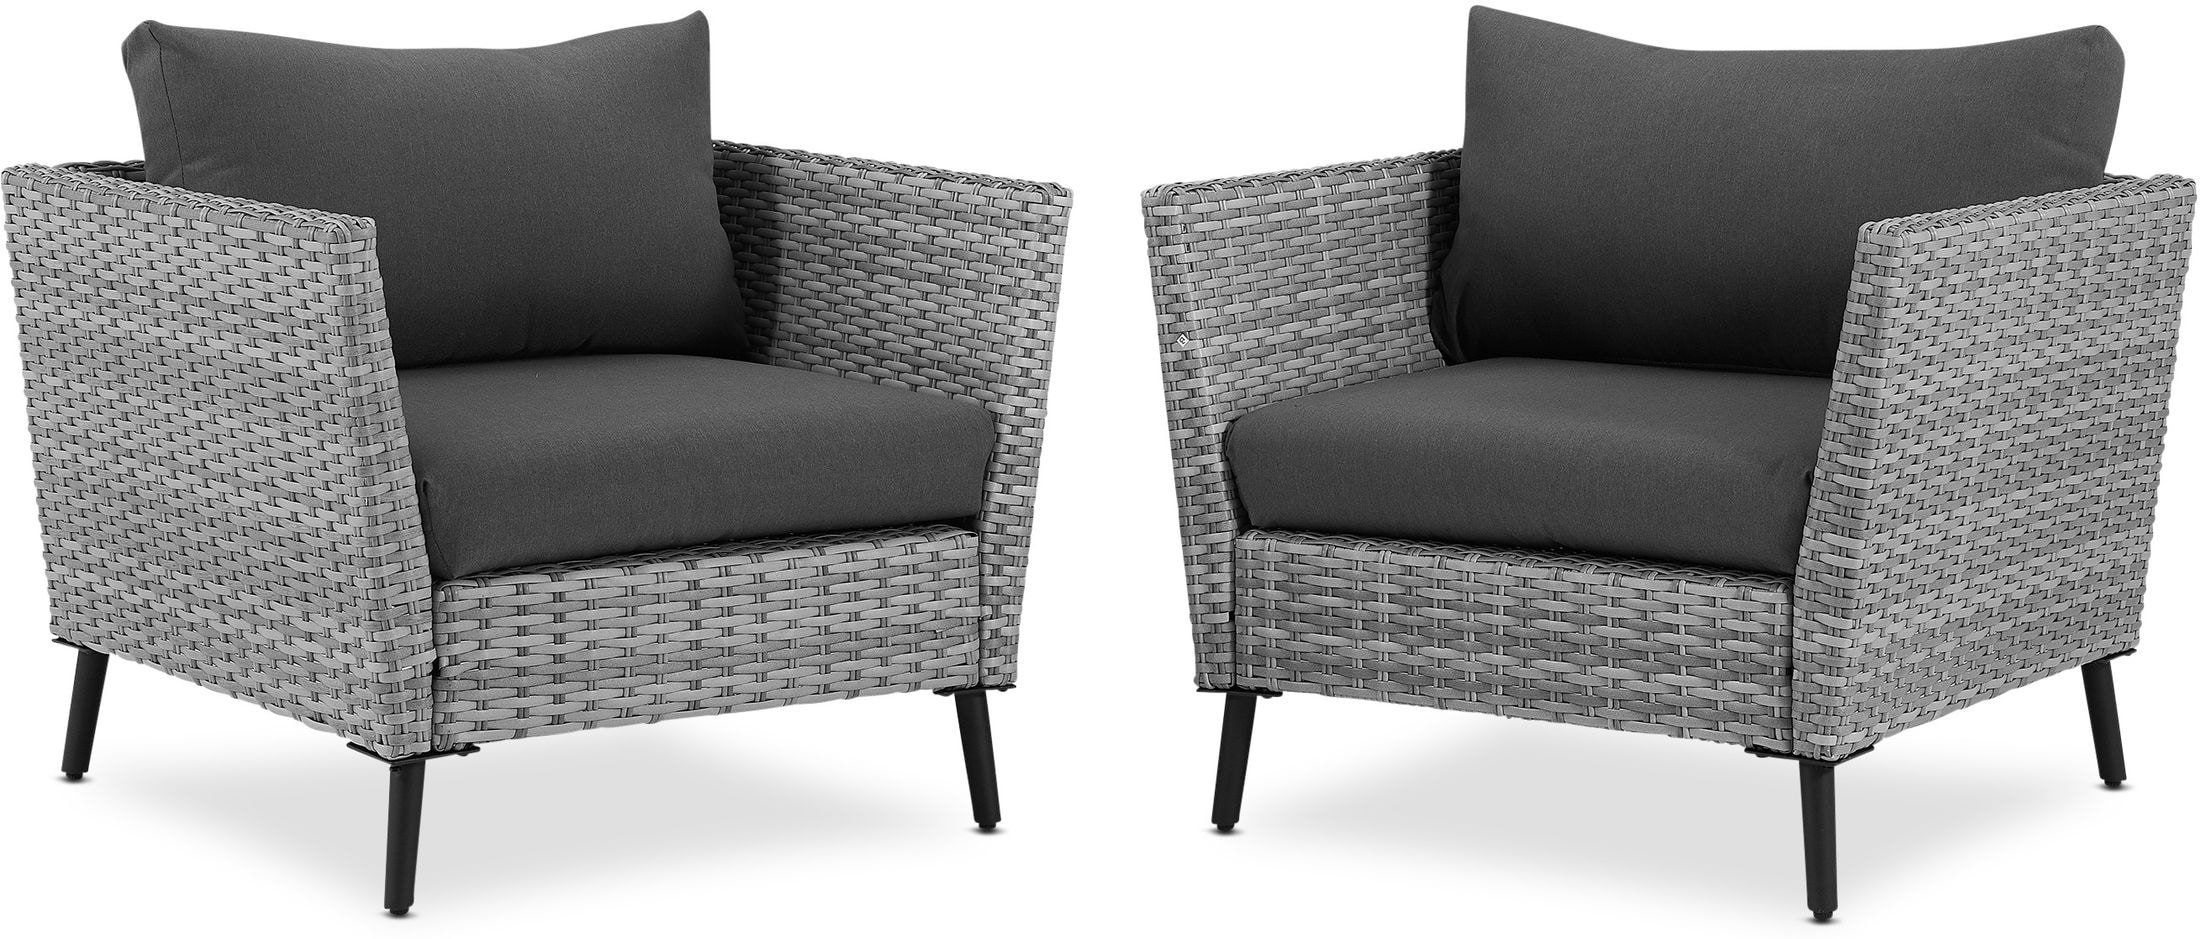 Outdoor Furniture - Ventura Set of 2 Outdoor Chairs